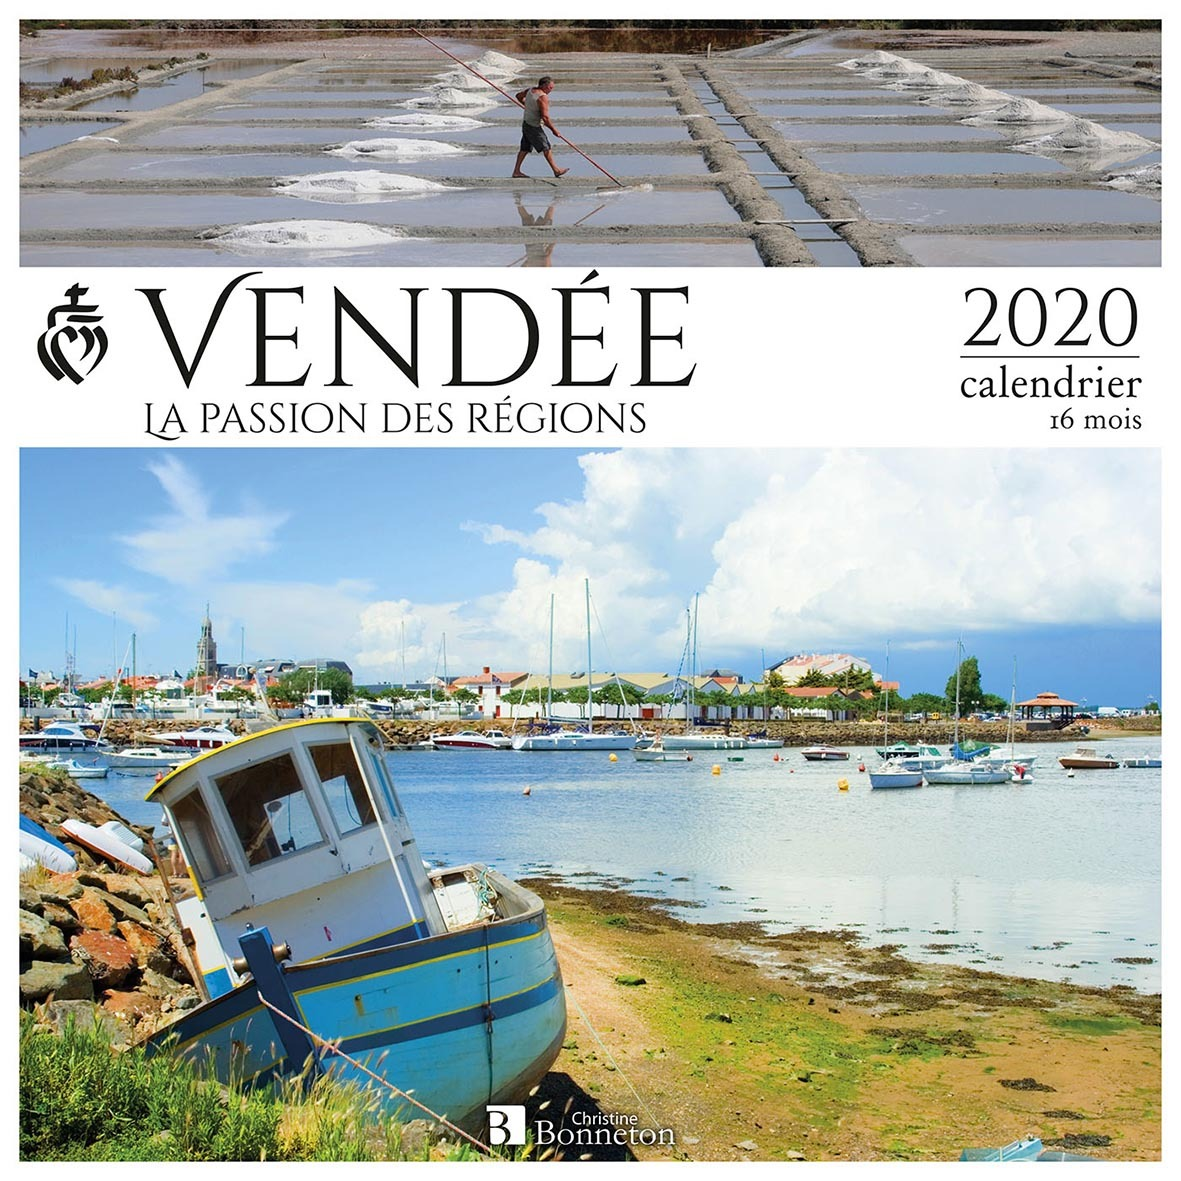 CALENDRIER VENDEE 2020 - LA PASSION DES REGIONS